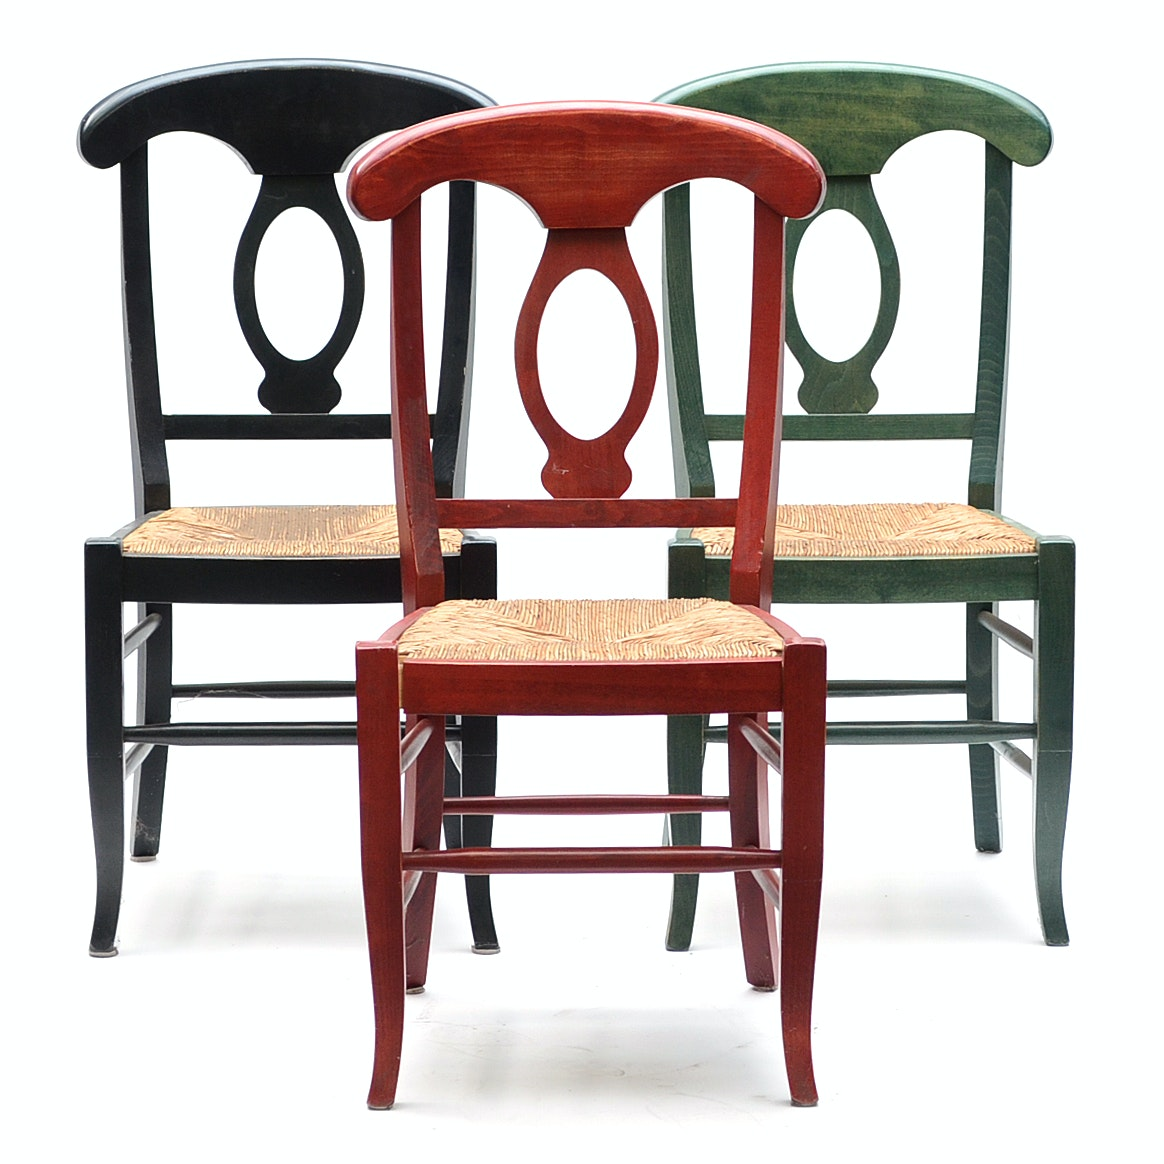 Three Pottery Barn Painted Wood Chairs with Wicker Seats